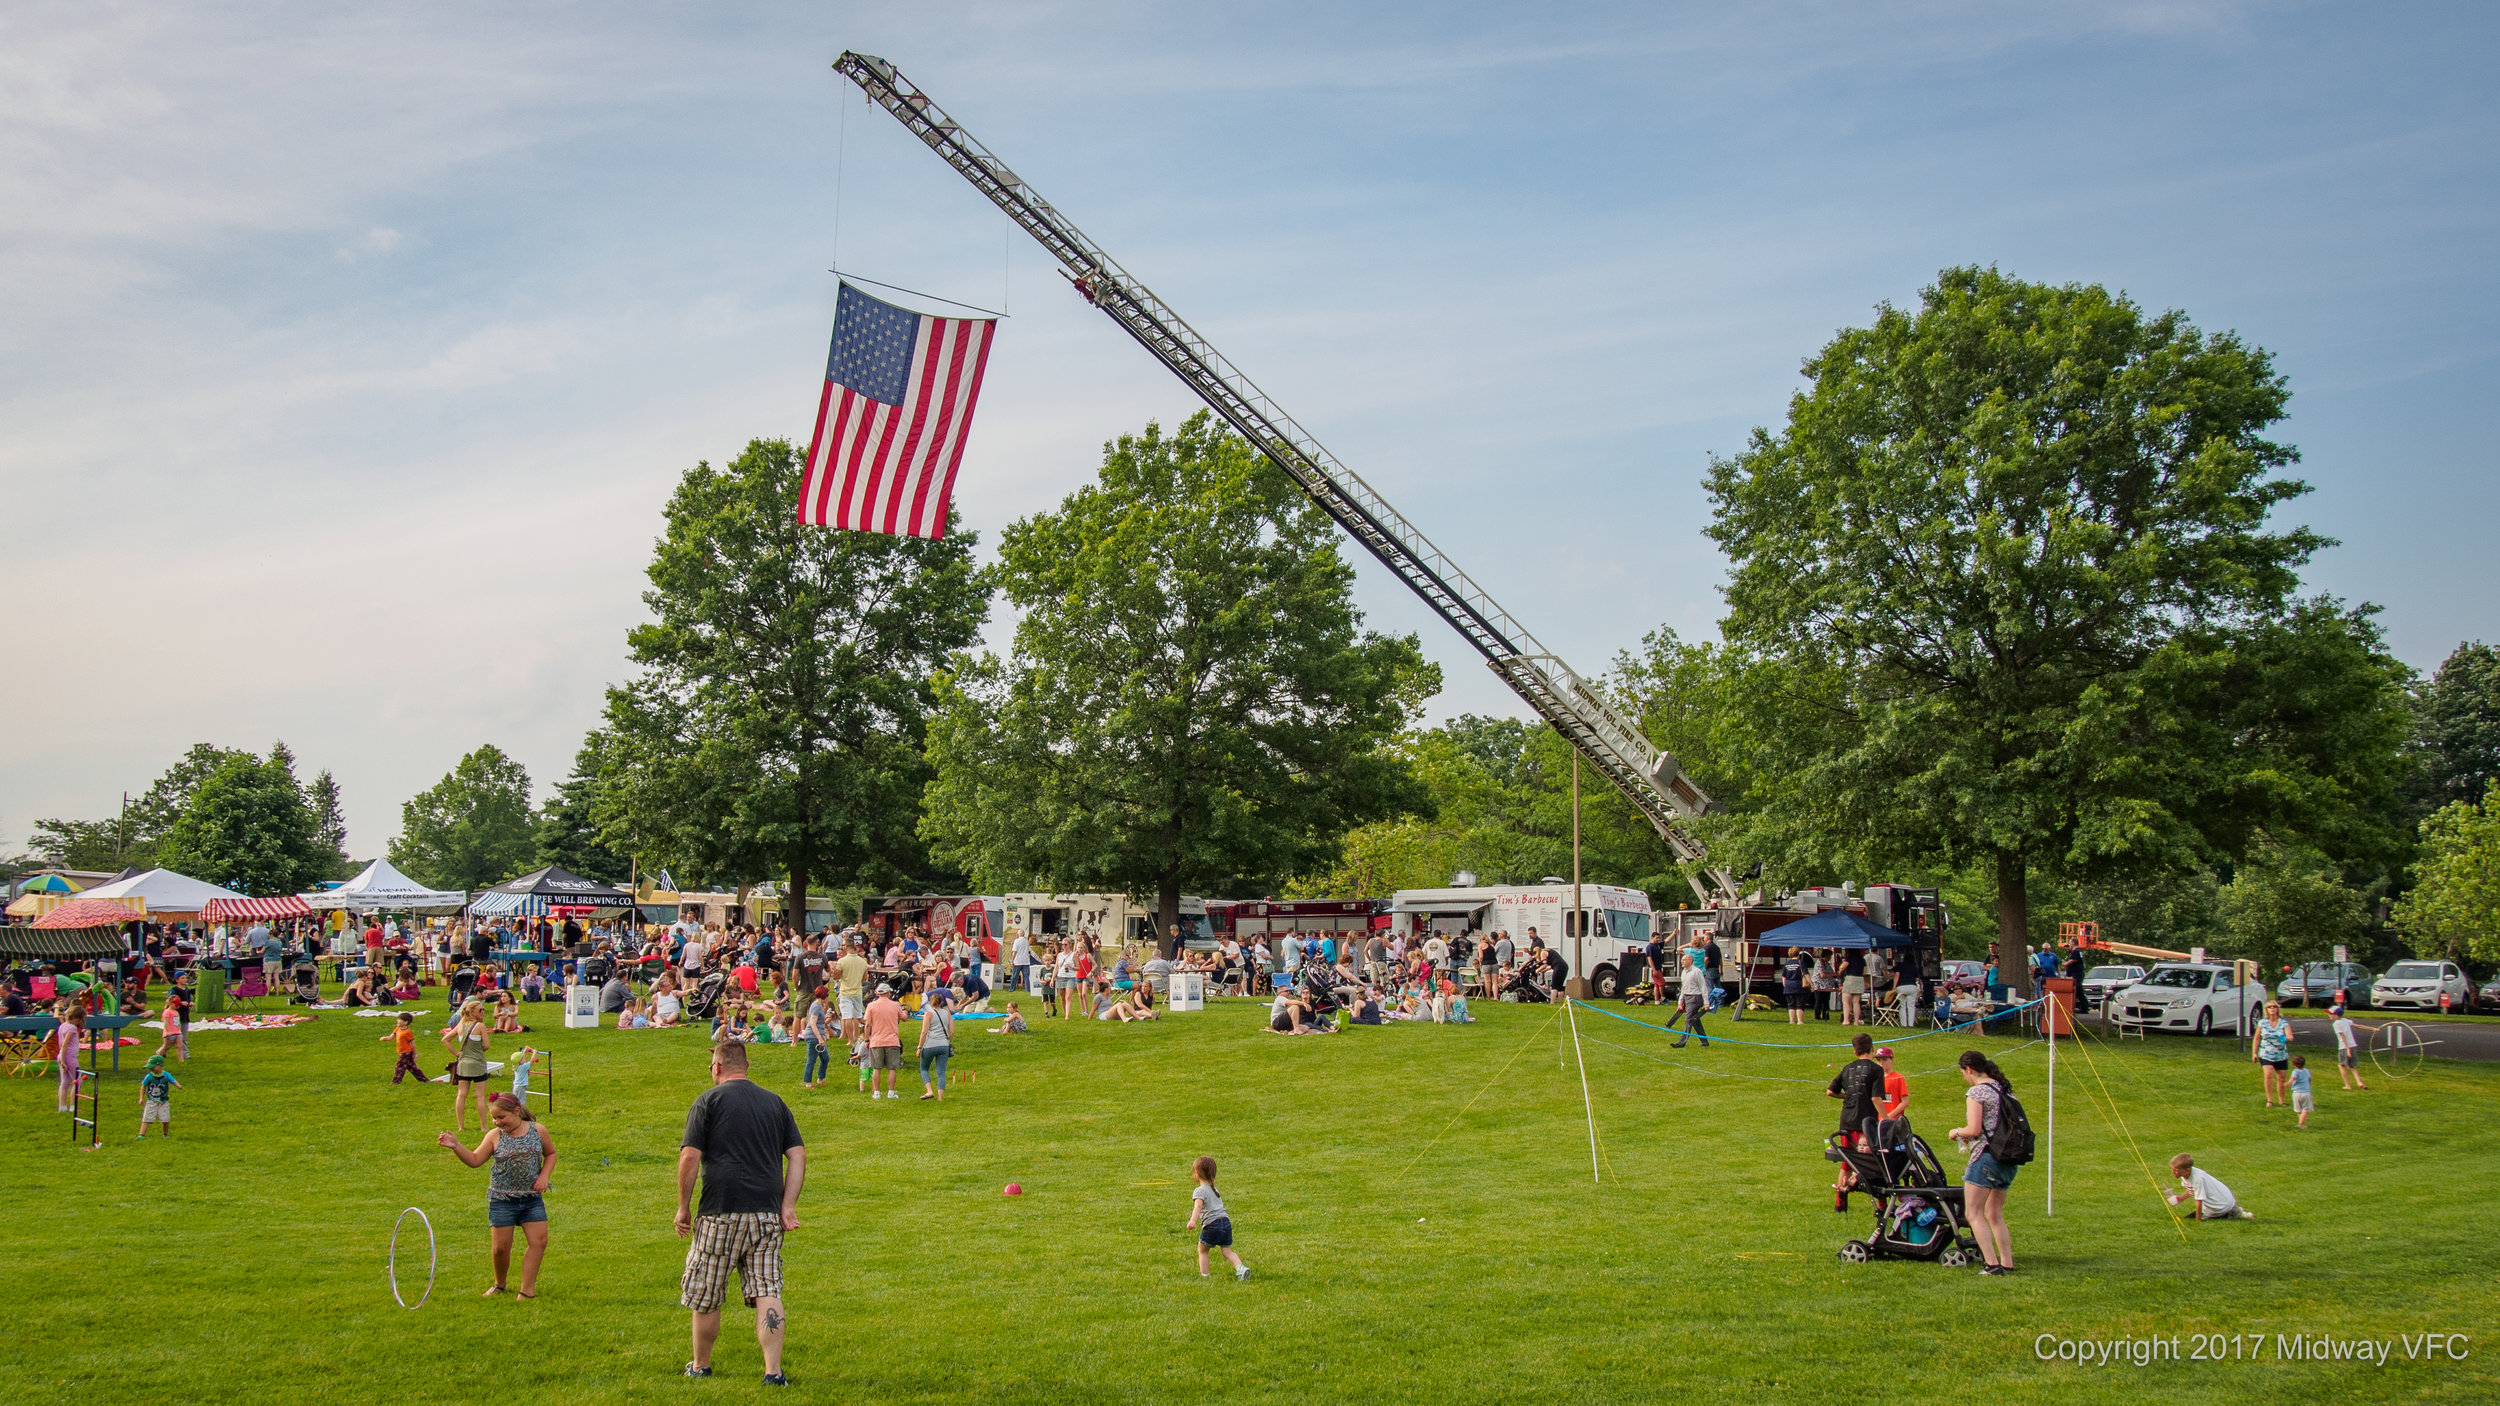 2017.06.22 - Peddler's Village held a successful fund raising event for Midway Volunteer Fire Department. A portion of the proceeds from the evening's events will go to the fire company in support of Midway's fire/rescue work in Buckingham and Solebury Townships.